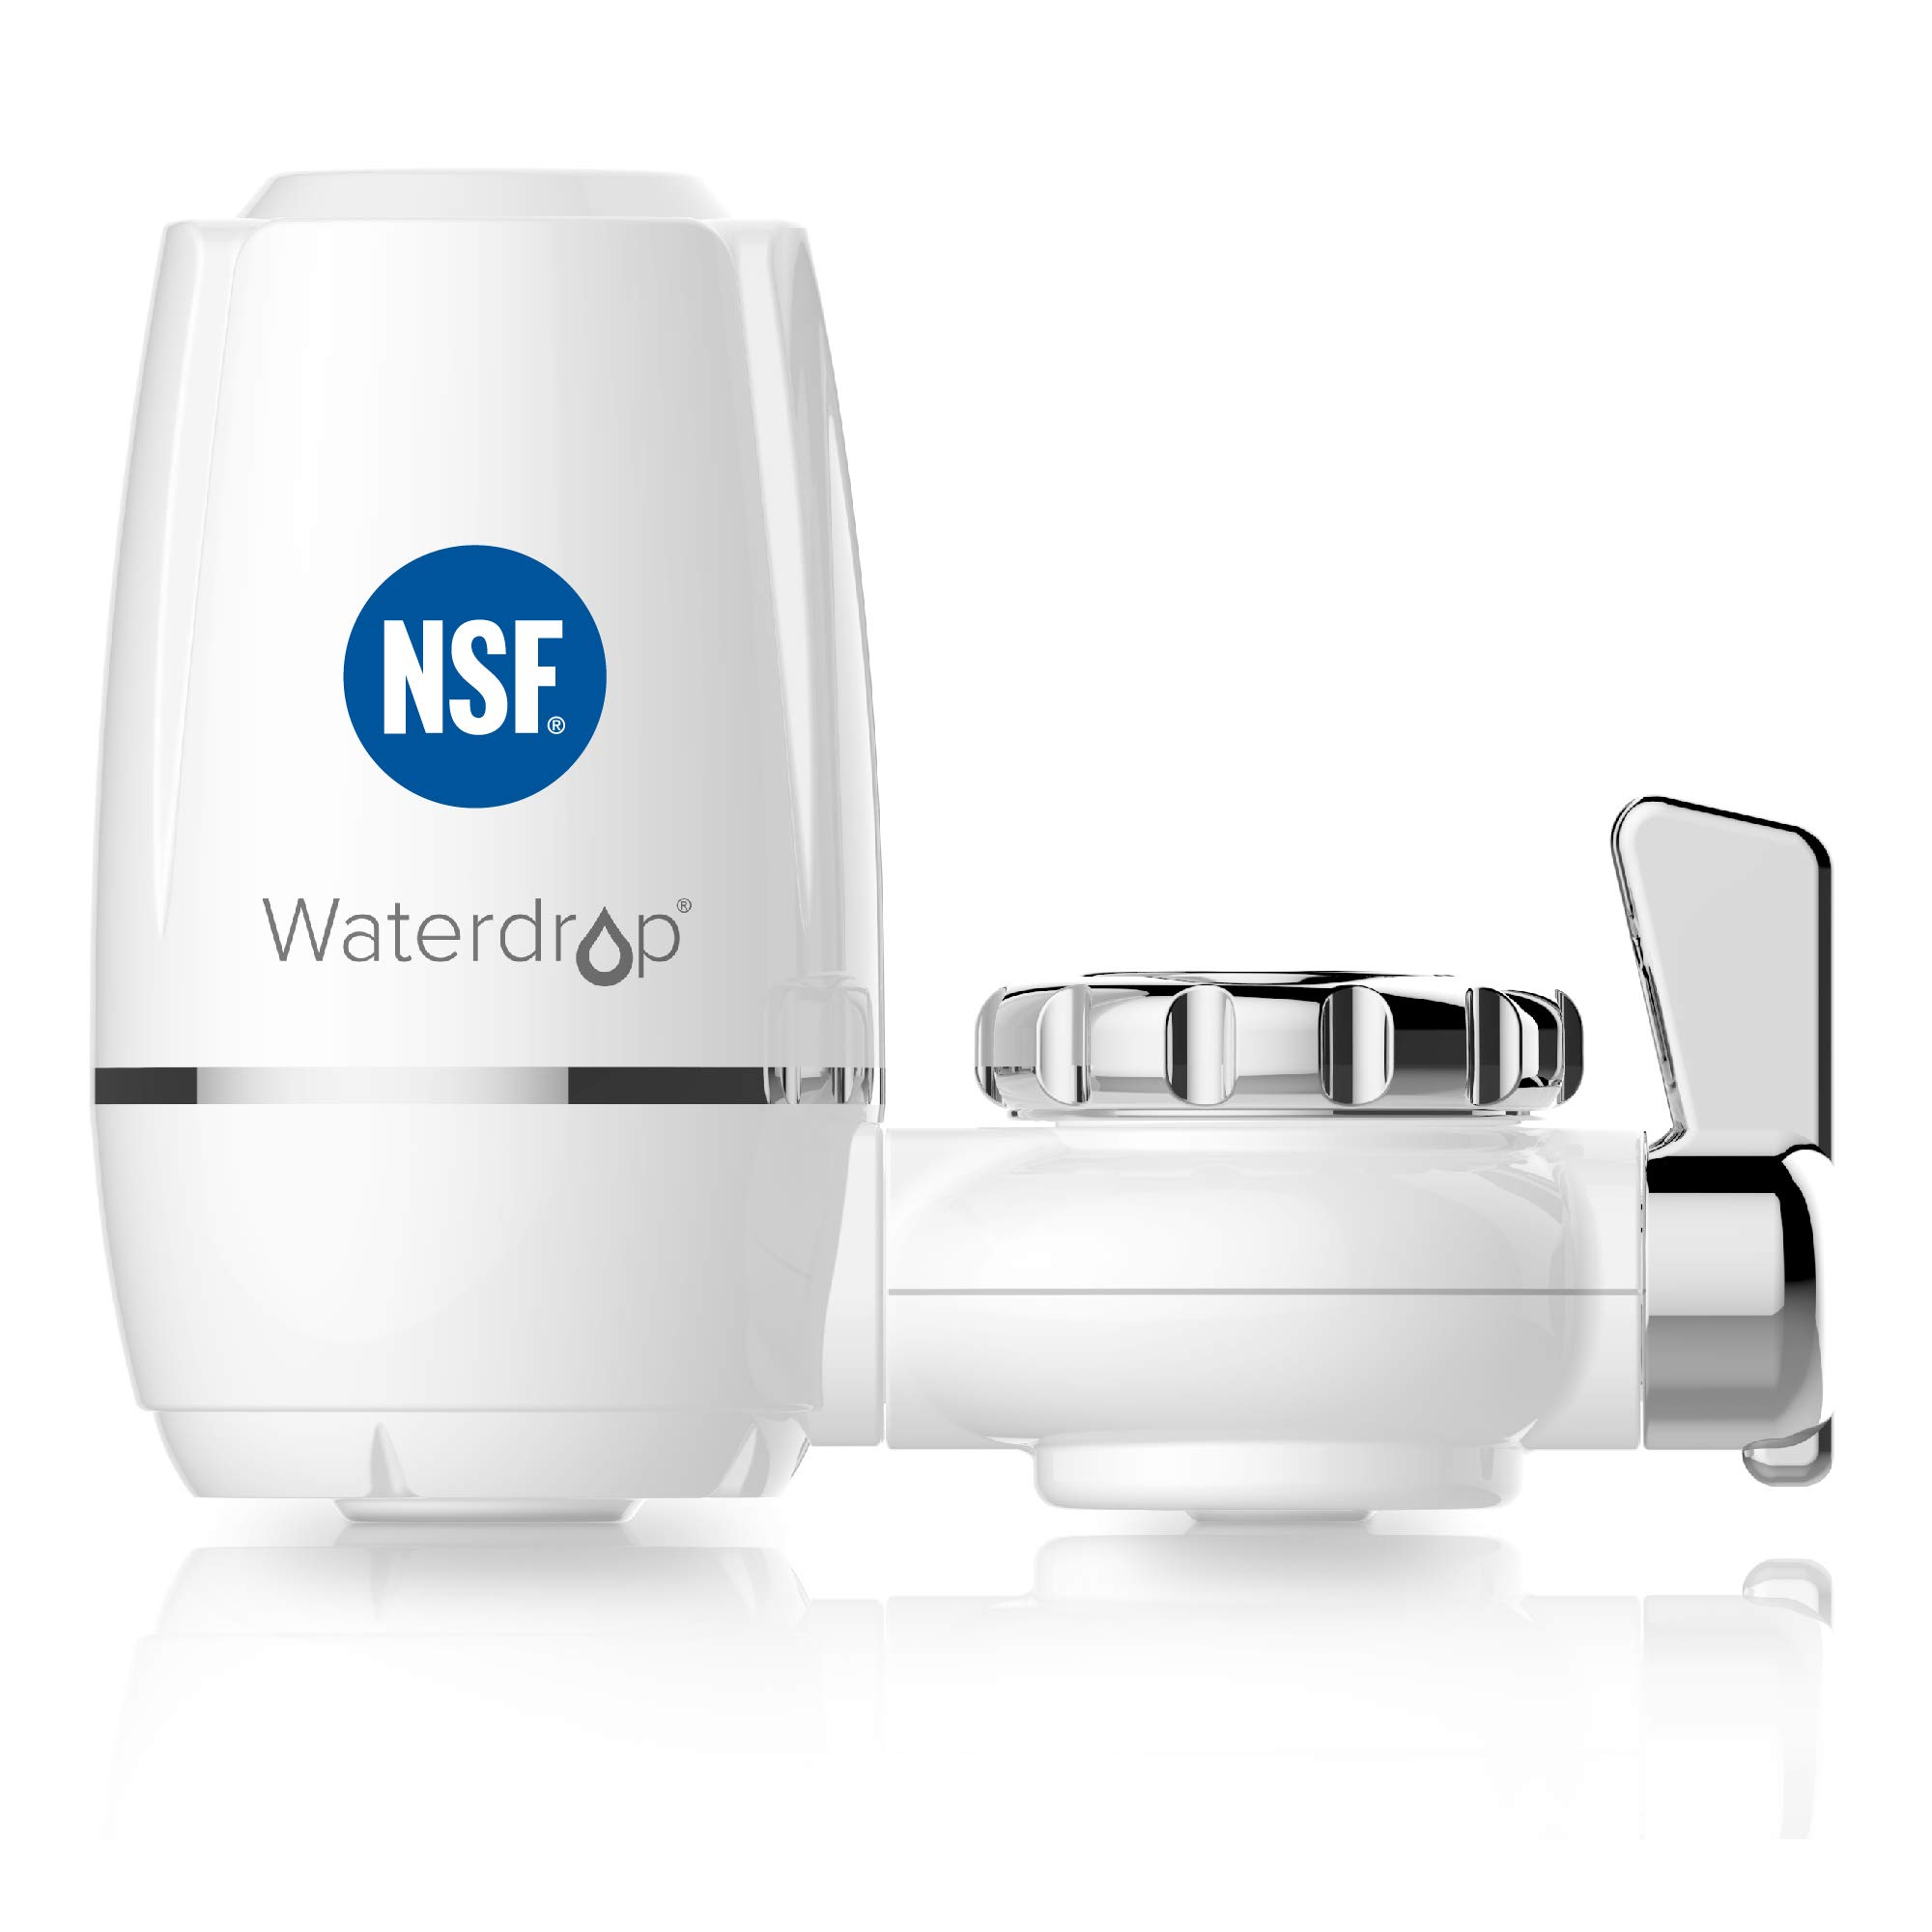 Waterdrop WD-FC-03 NSF Certified 320-Gallon ACF Water Faucet Filtration System, Faucet Filter, Reduces Chlorine, Harmful Contaminants Metals & Sediments-Fits Standard Faucets,1 Filter Include